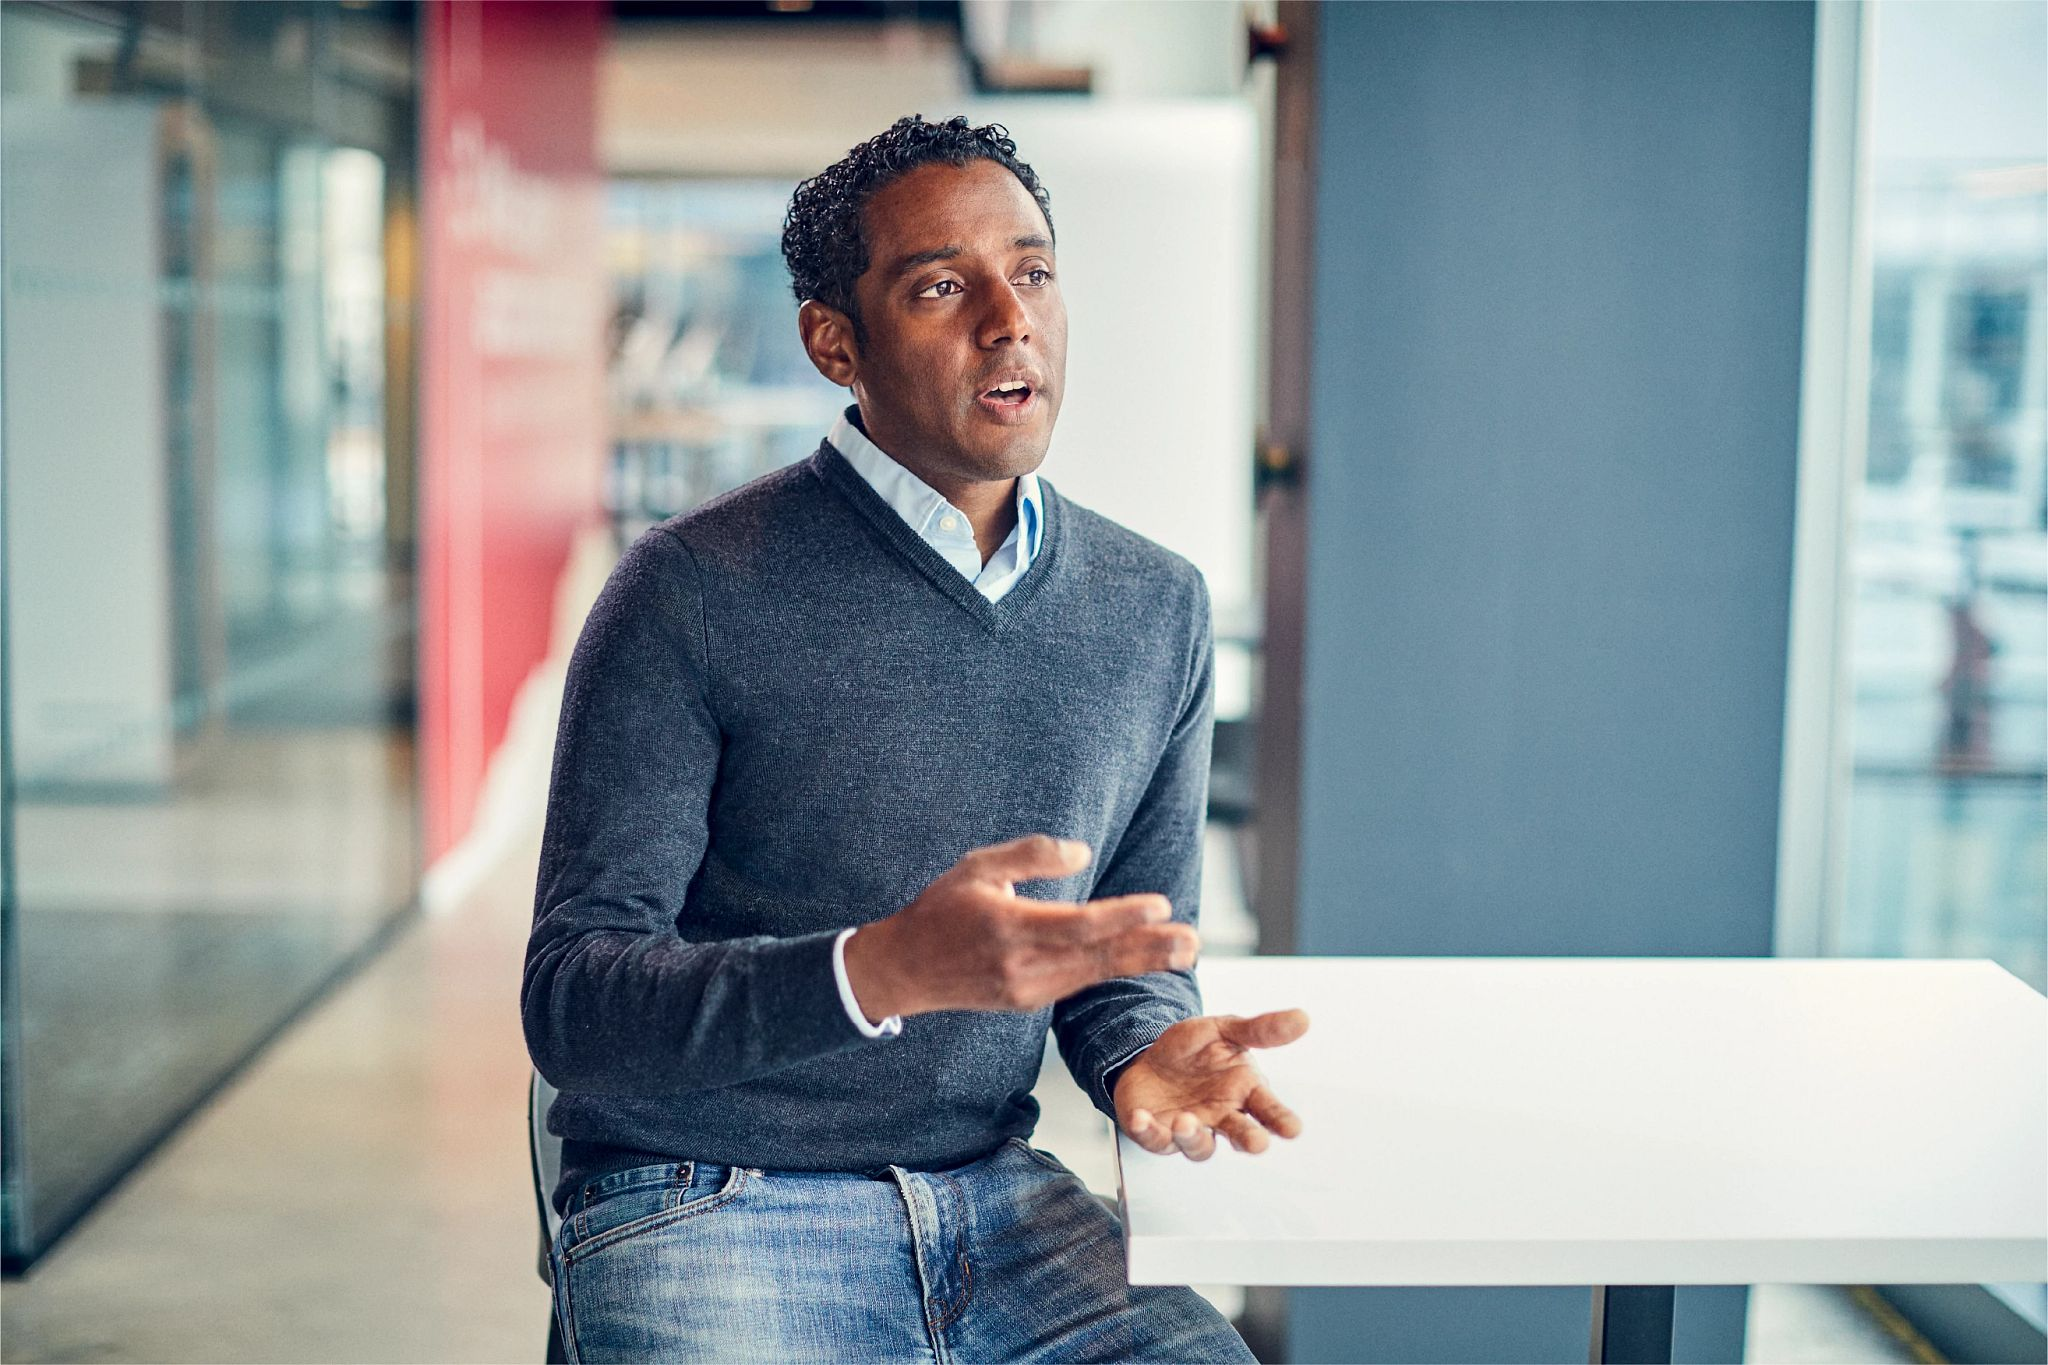 Romero H., VP, Strategy & Business Development, speaks passionately about how Cengage delivers the skills required for the 21st-century workforce.